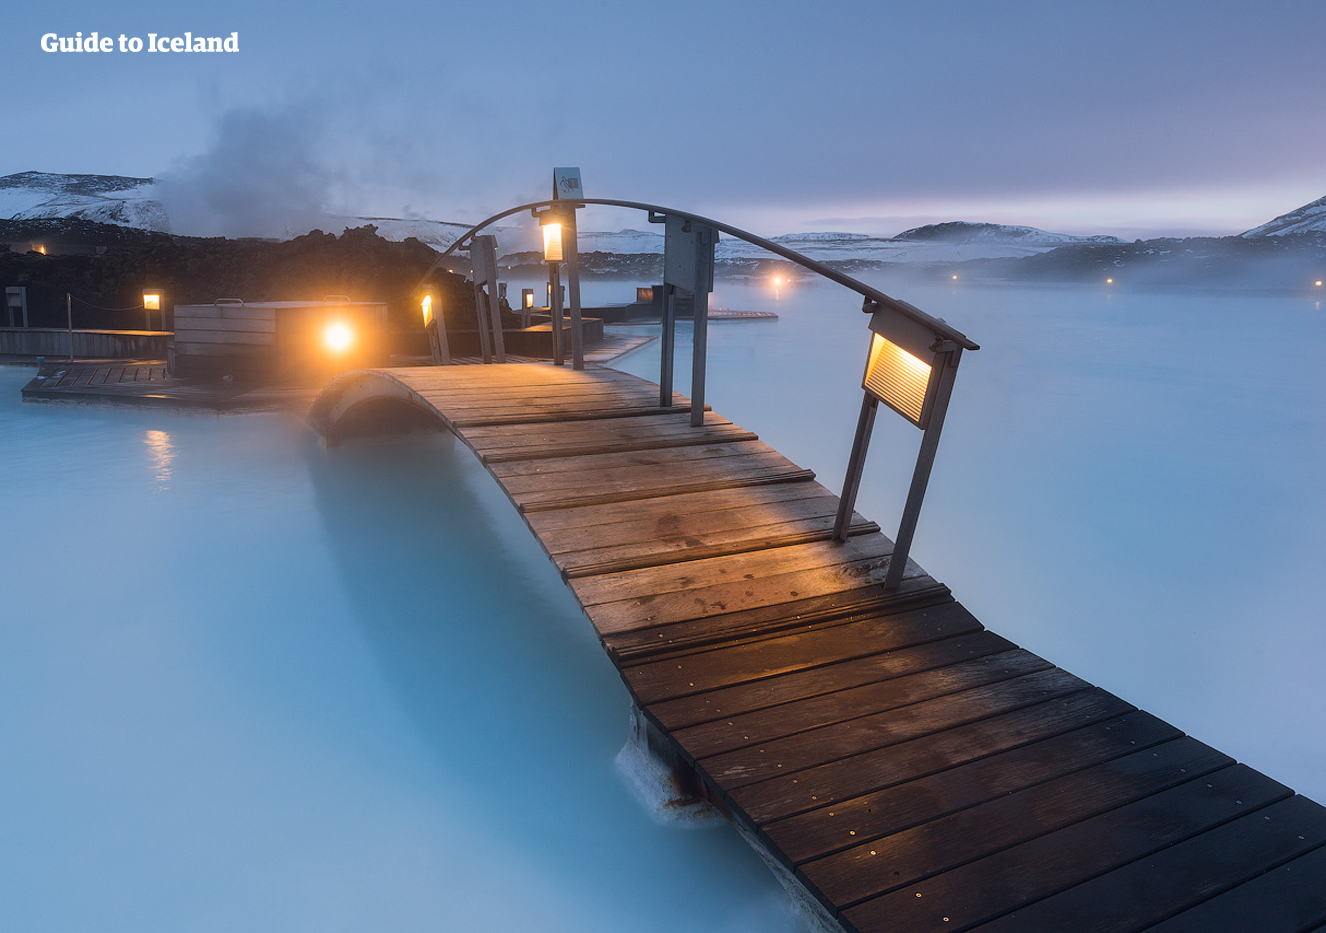 For a truly luxurious experience, visit the Blue Lagoon Spa. For something a little more natural, seek out one of the country's many hidden hot pools.